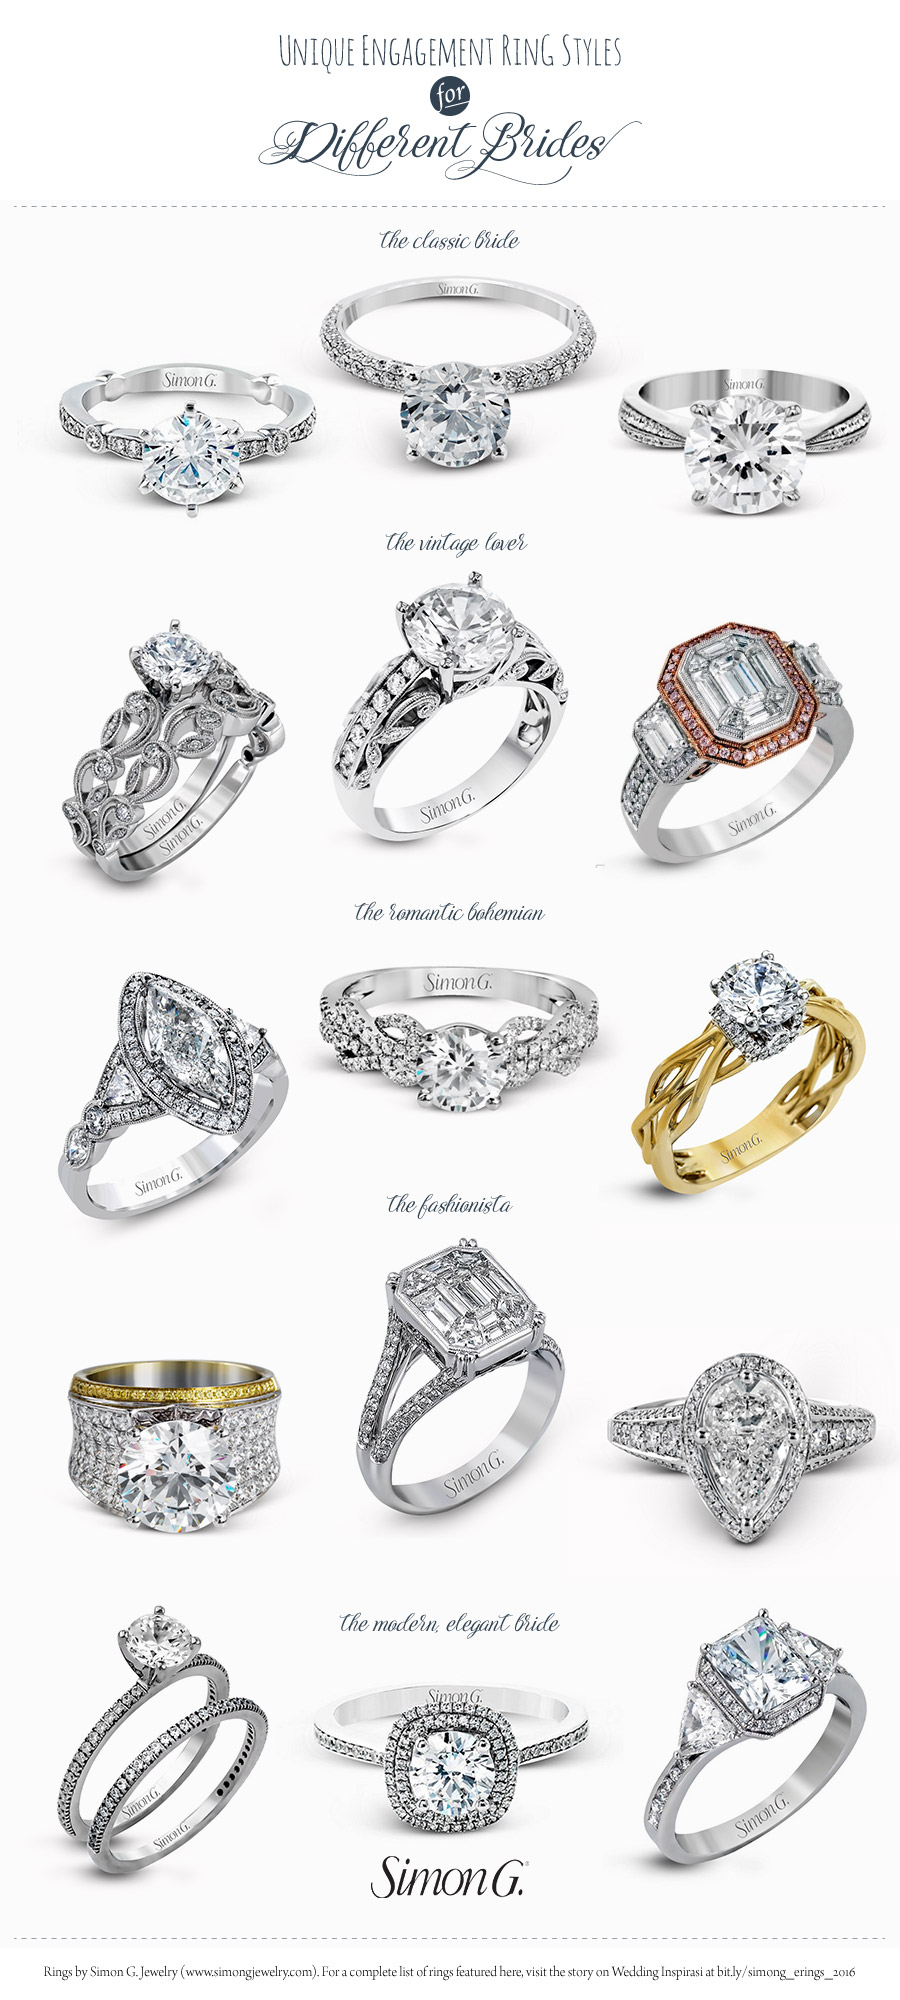 simon g gorgeous engagement rings wedding ring styles diamond halo rose gold vintage unique designs 2017